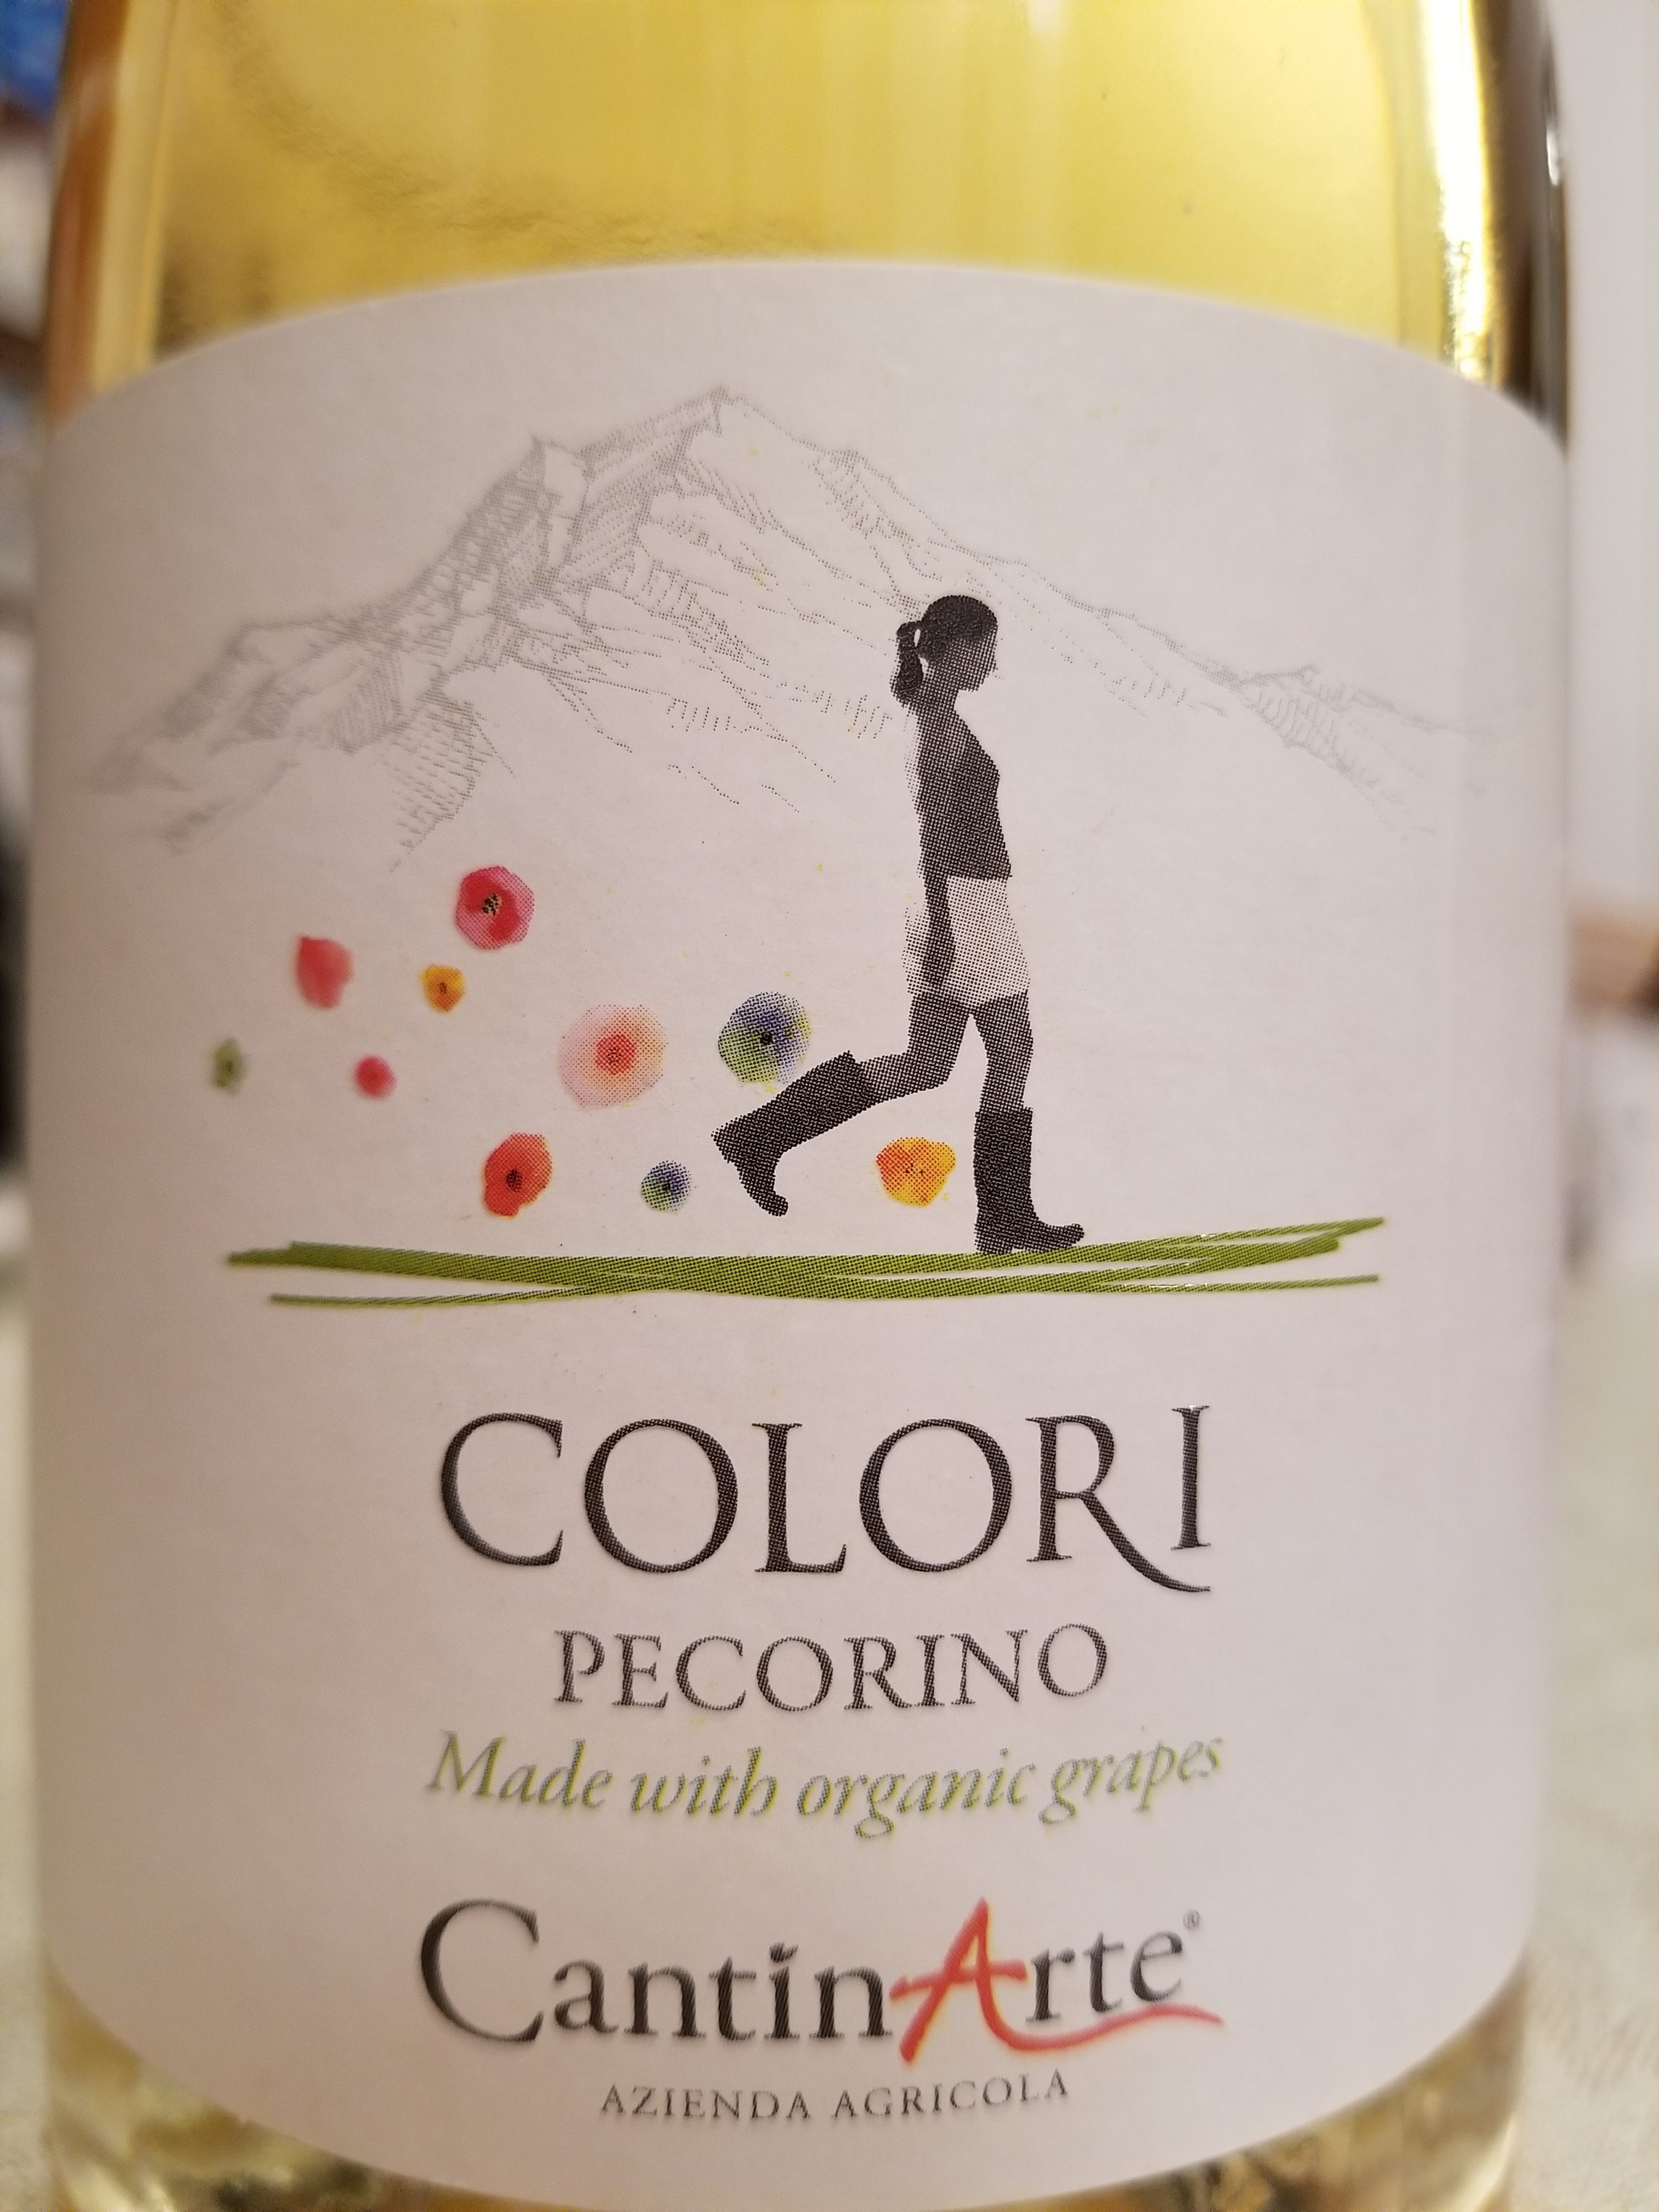 2016 Colori Pecorino photo